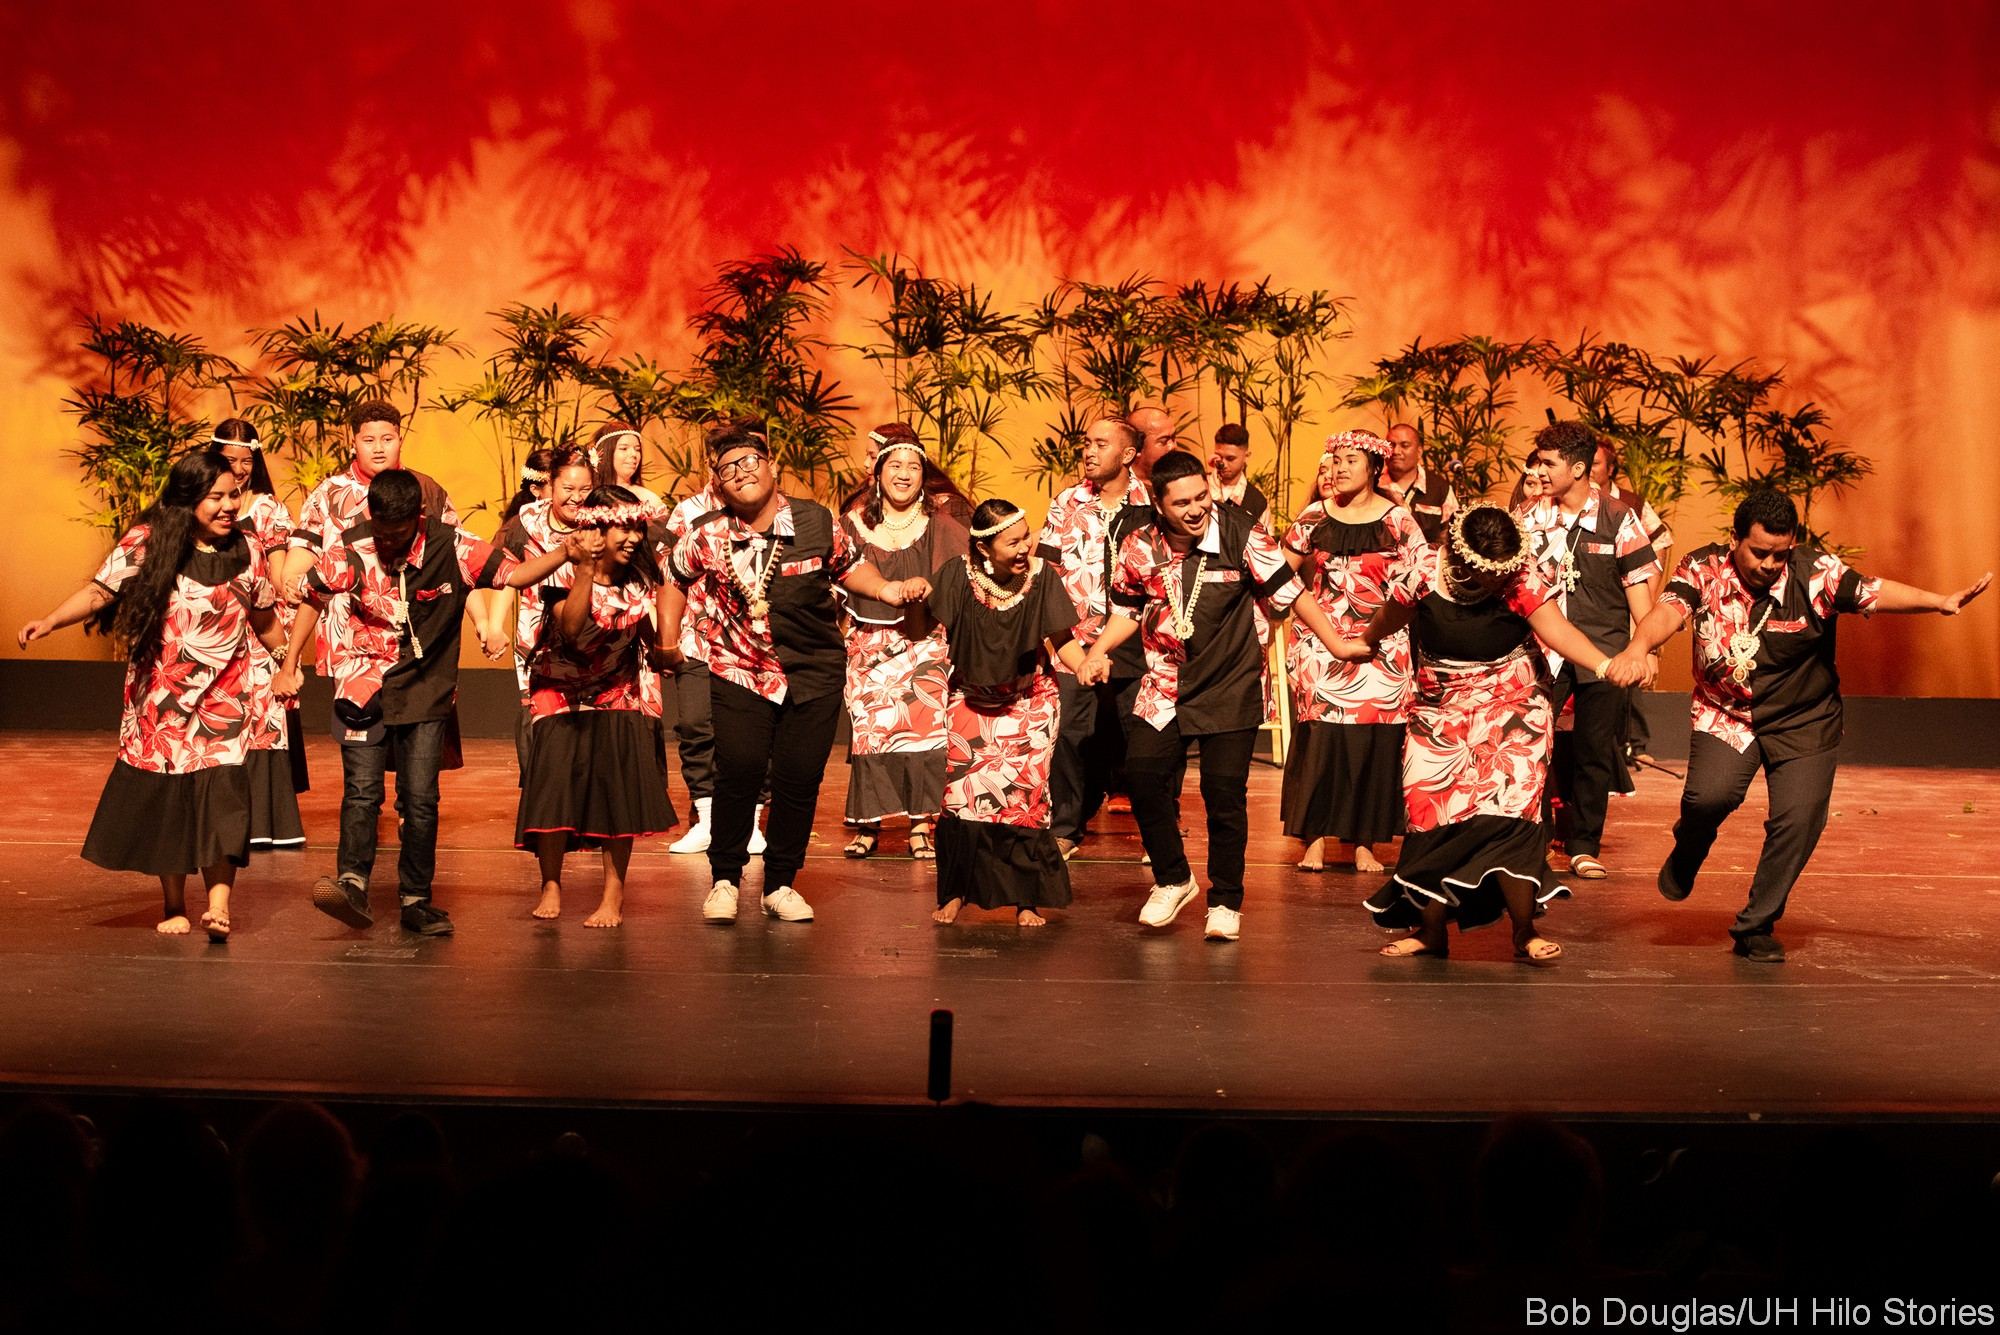 Group dance, black and orange costumes, orange background.